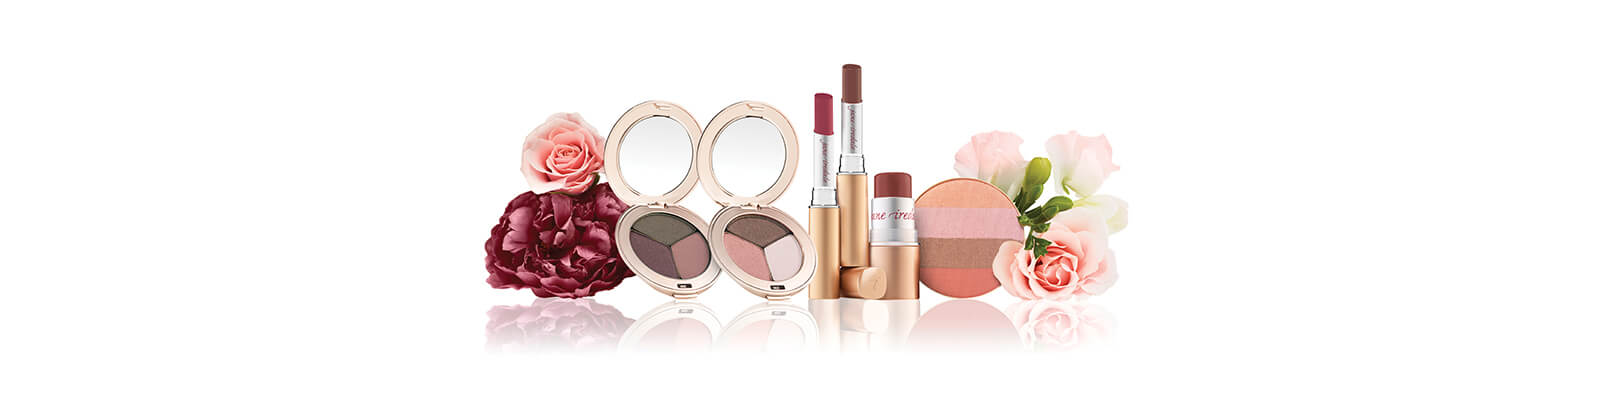 jane iredale the skincare makeup | Kosmetikstudio Egerer